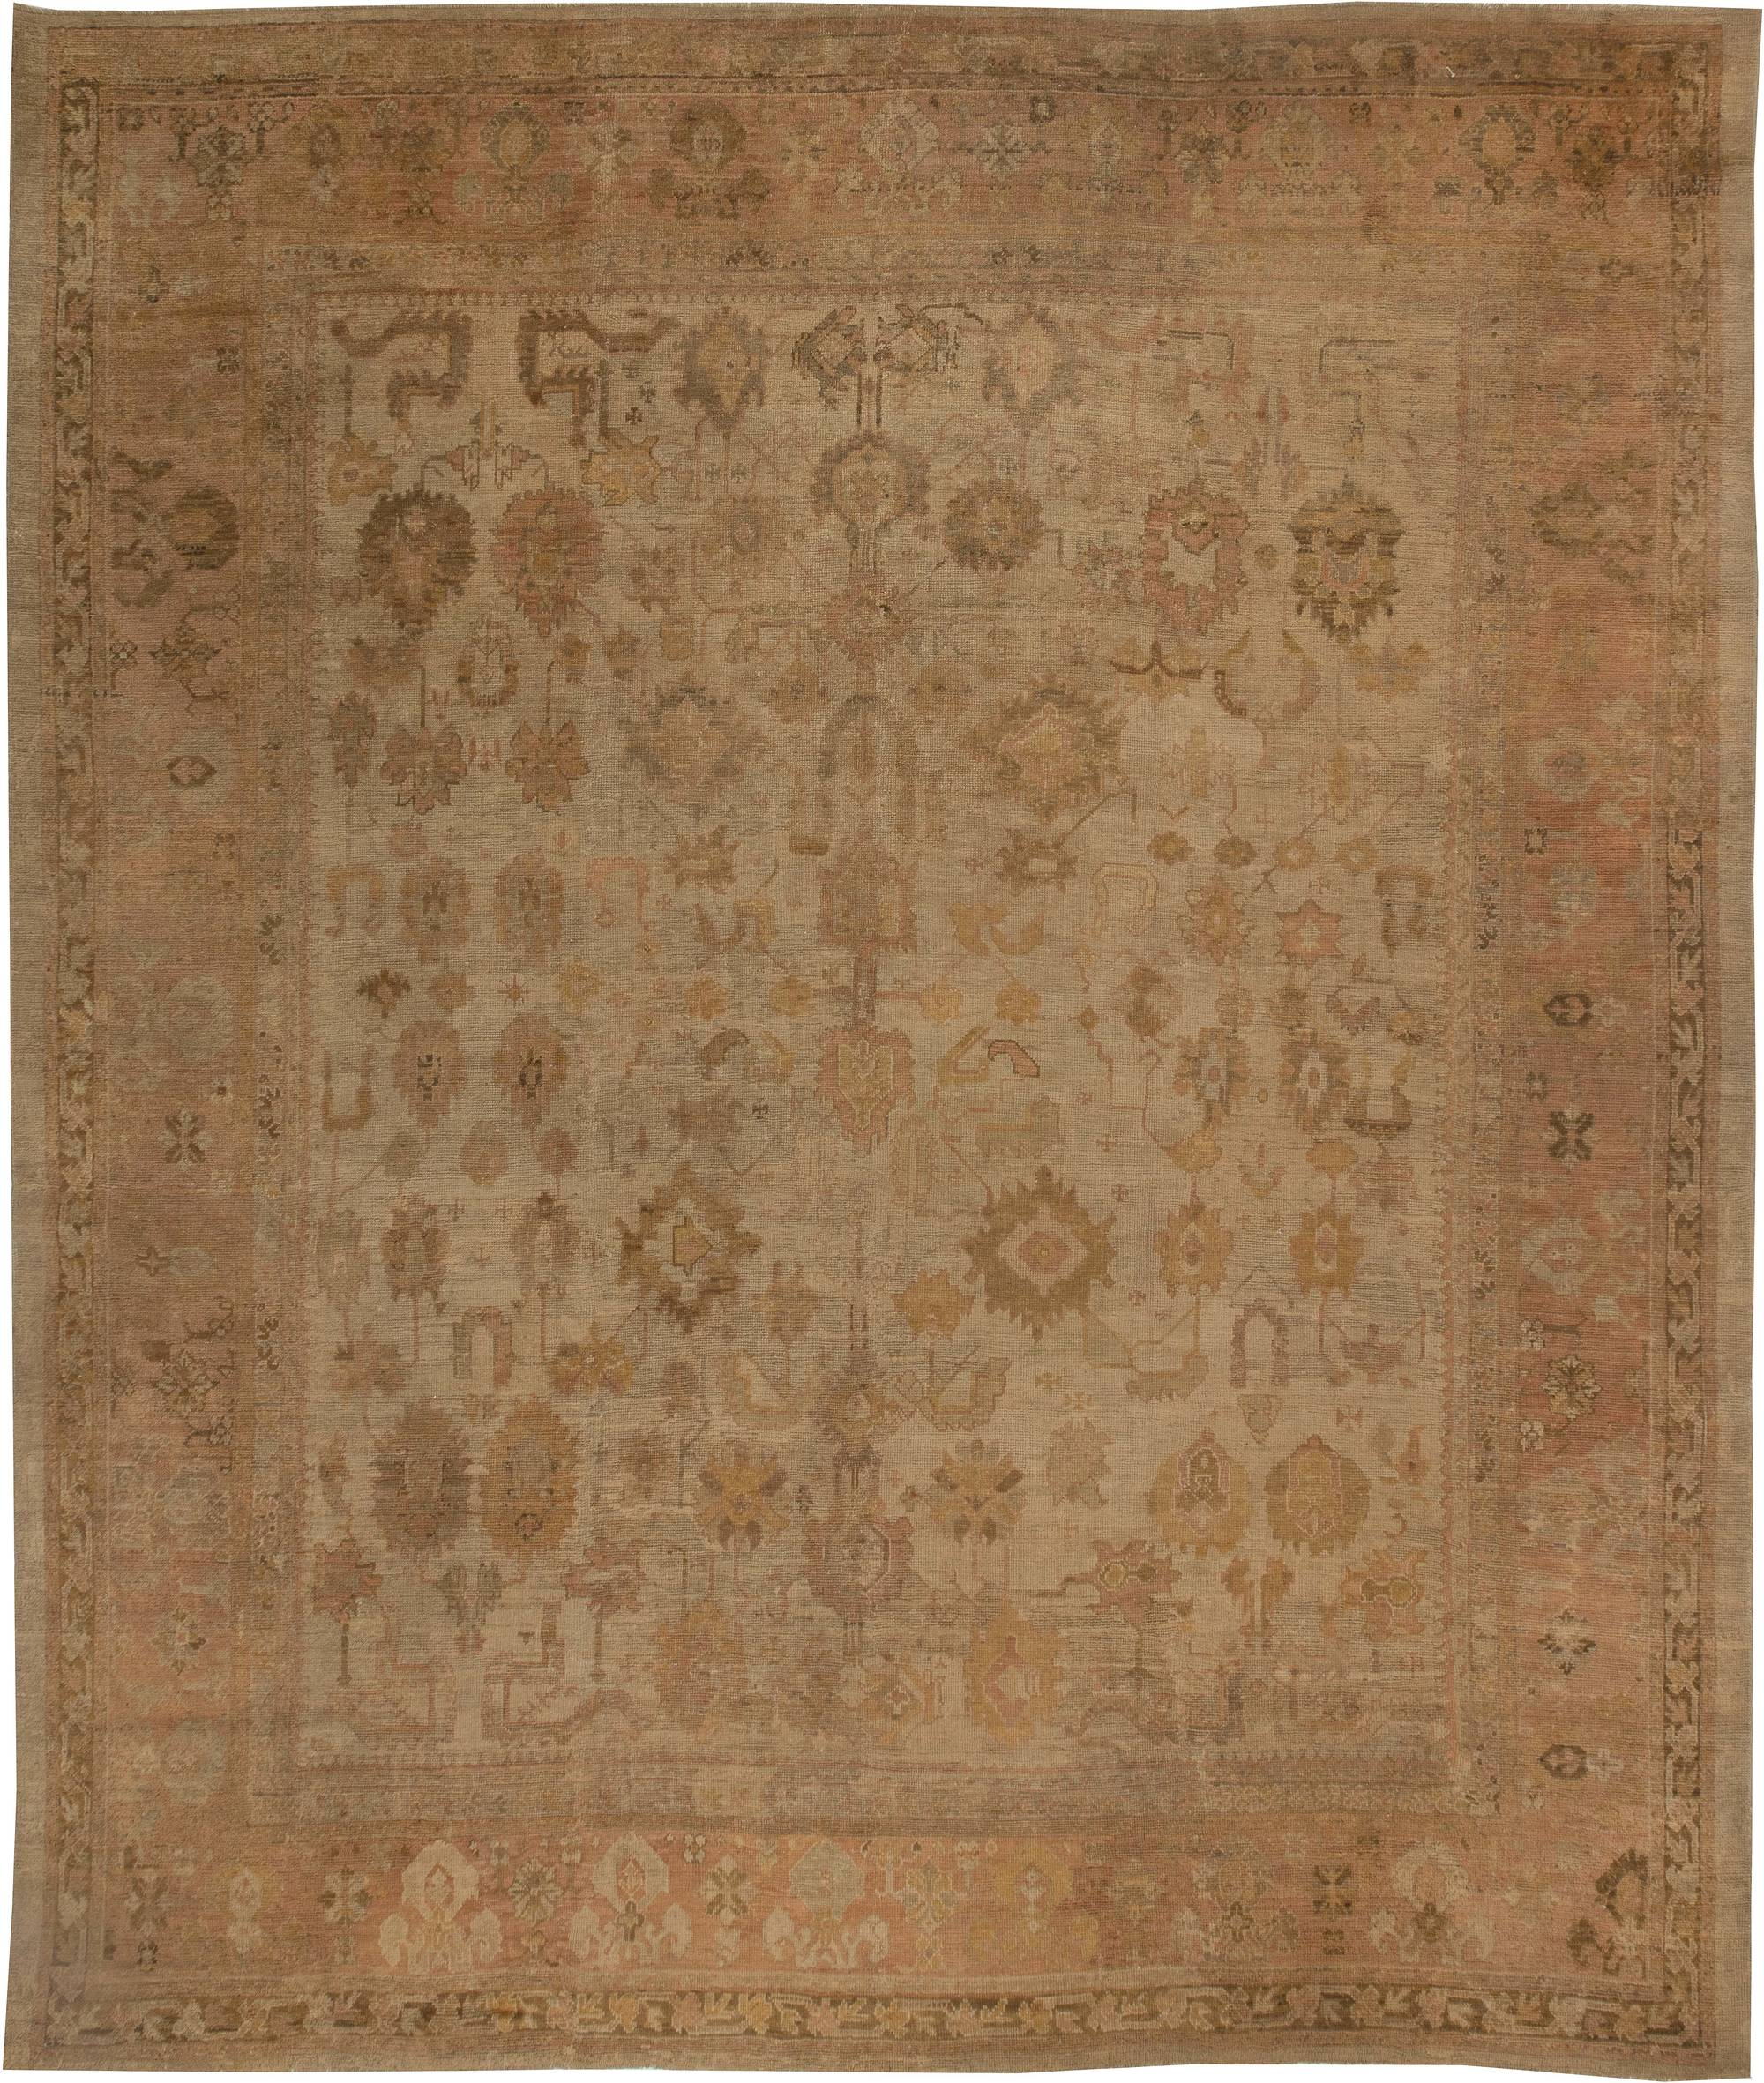 Antique Large Rug: Large Antique Turkish Oushak Rug BB2656 By Doris Leslie Blau